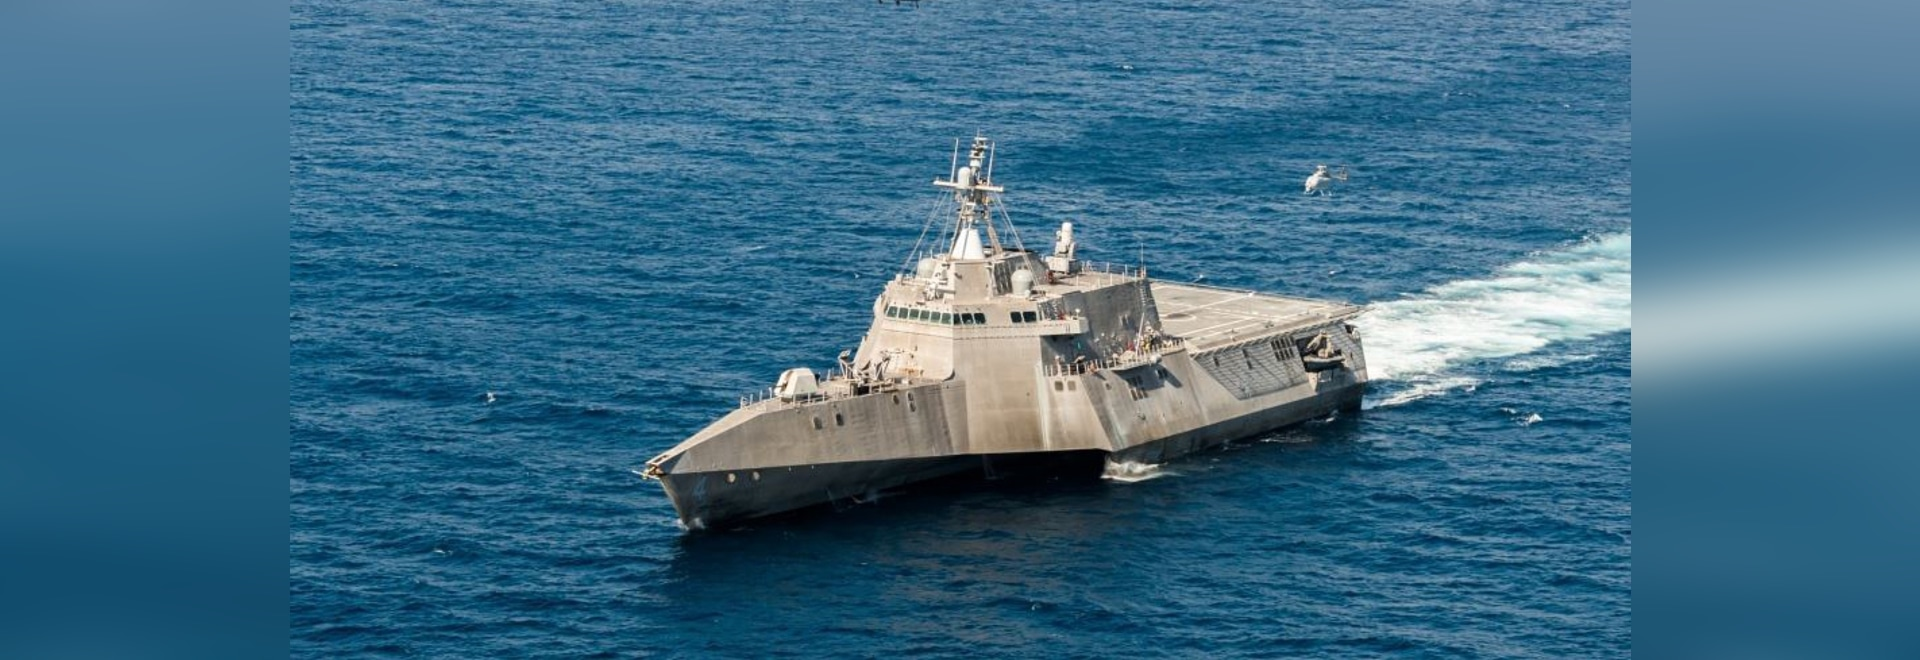 The littoral combat ship USS Coronado (LCS 4). Navy photo by Mass Communication Specialist 2nd Class Jacob I. Allison